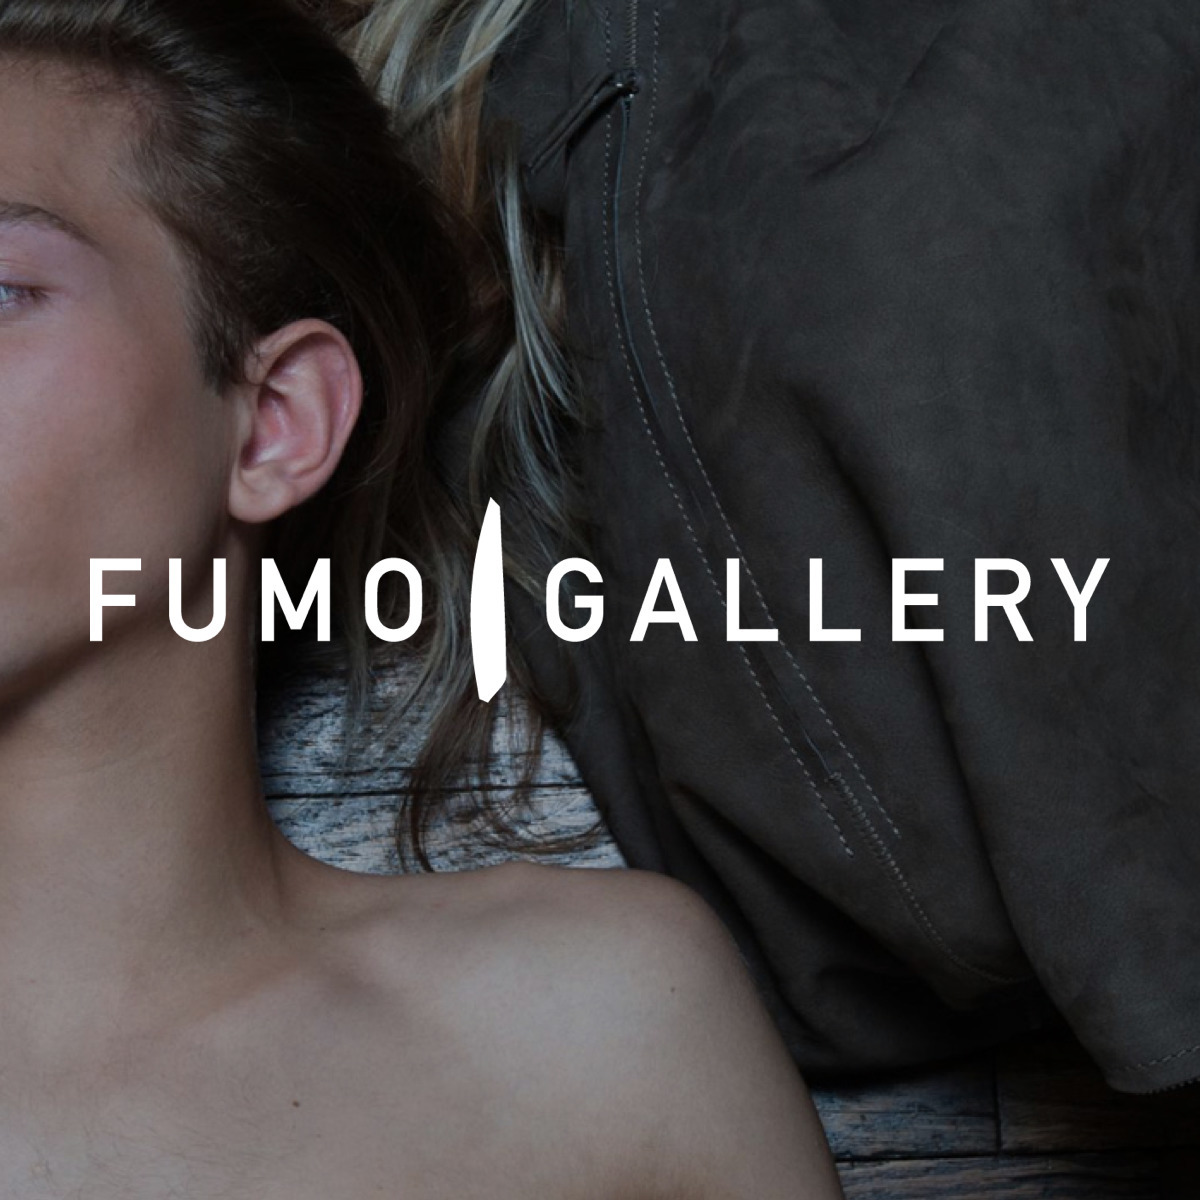 Fumogallery – Call for New Talent